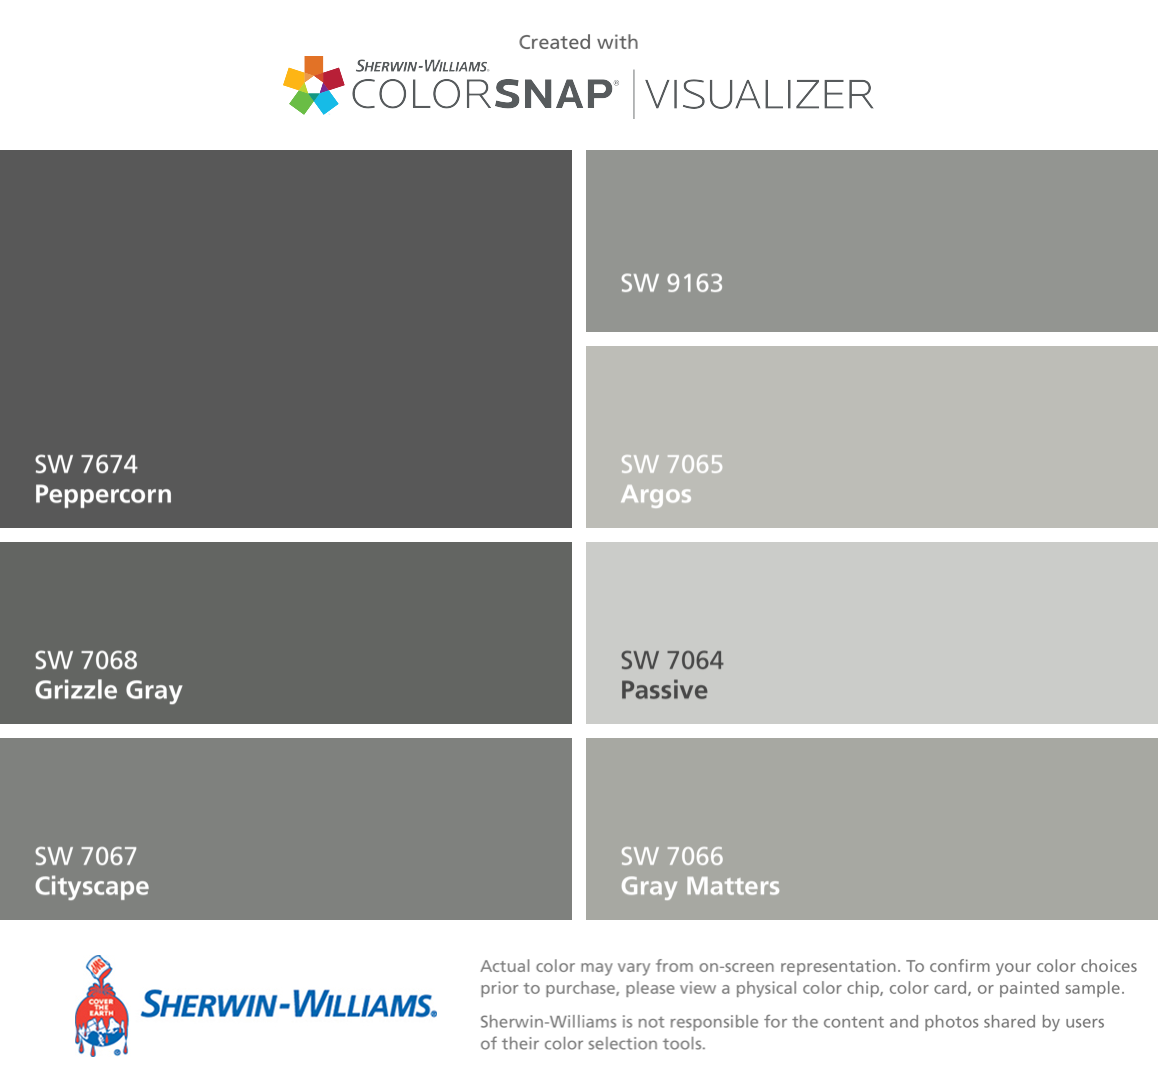 Sherwin williams popular greys - I Found These Colors With Colorsnap Visualizer For Iphone By Sherwin Williams Peppercorn